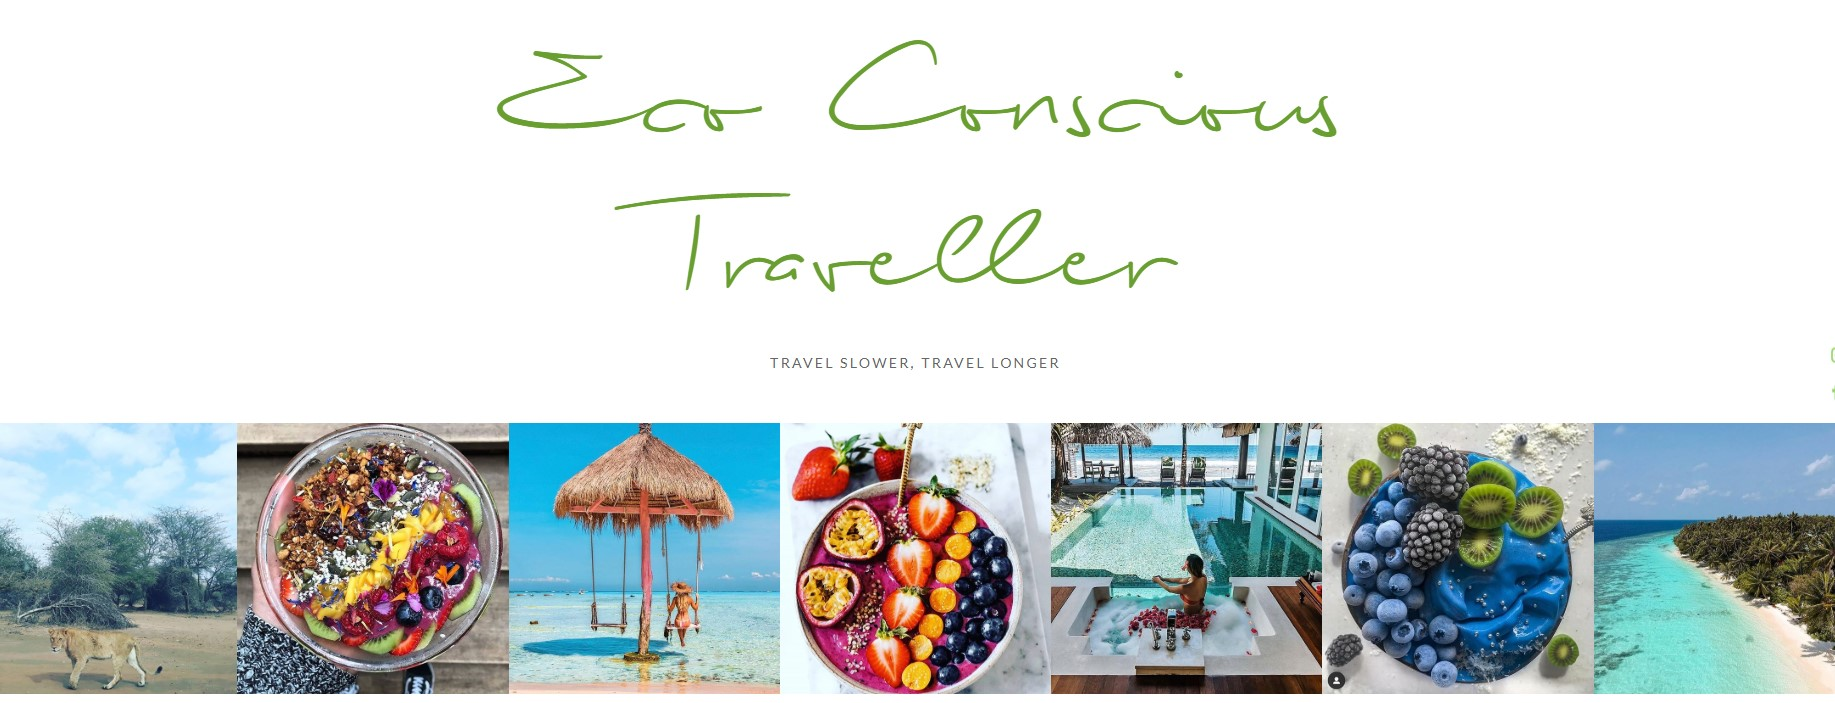 Website homepage image of Eco Conscious Traveller